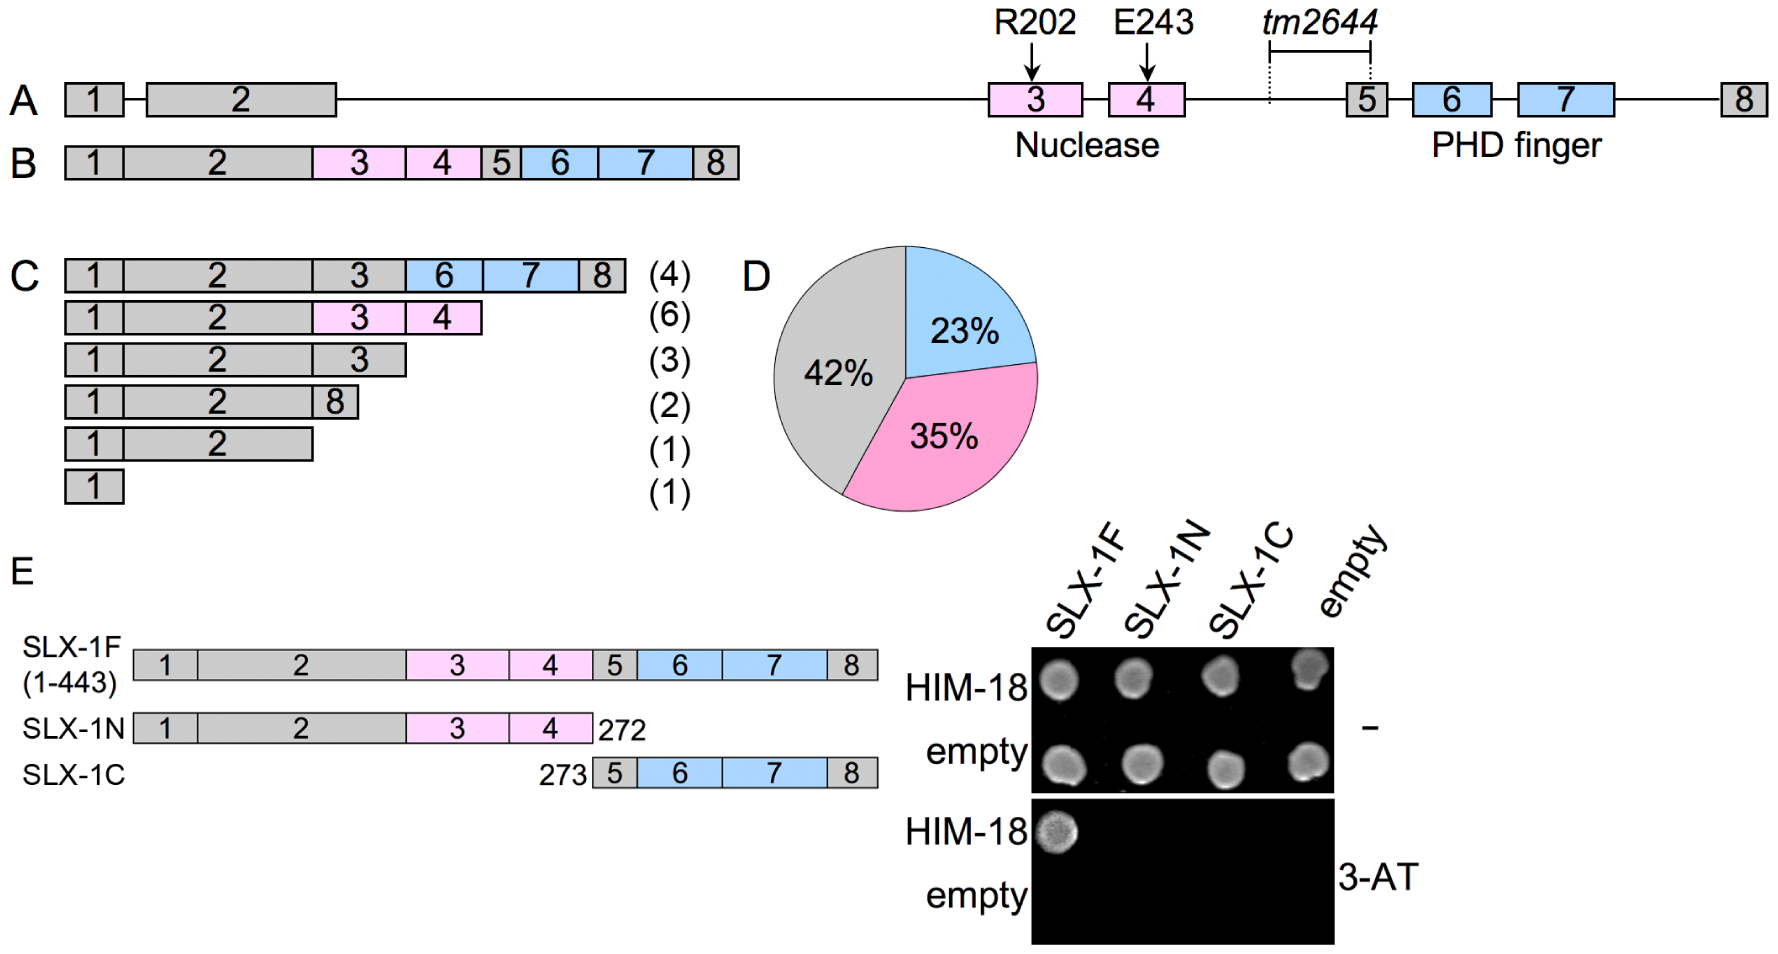 <i>slx-1</i>(<i>tm2644</i>) mutants express splice variants that lack the C-terminus region required for an interaction with HIM-18, therefore encoding for nuclease-negative variants of SLX-1.